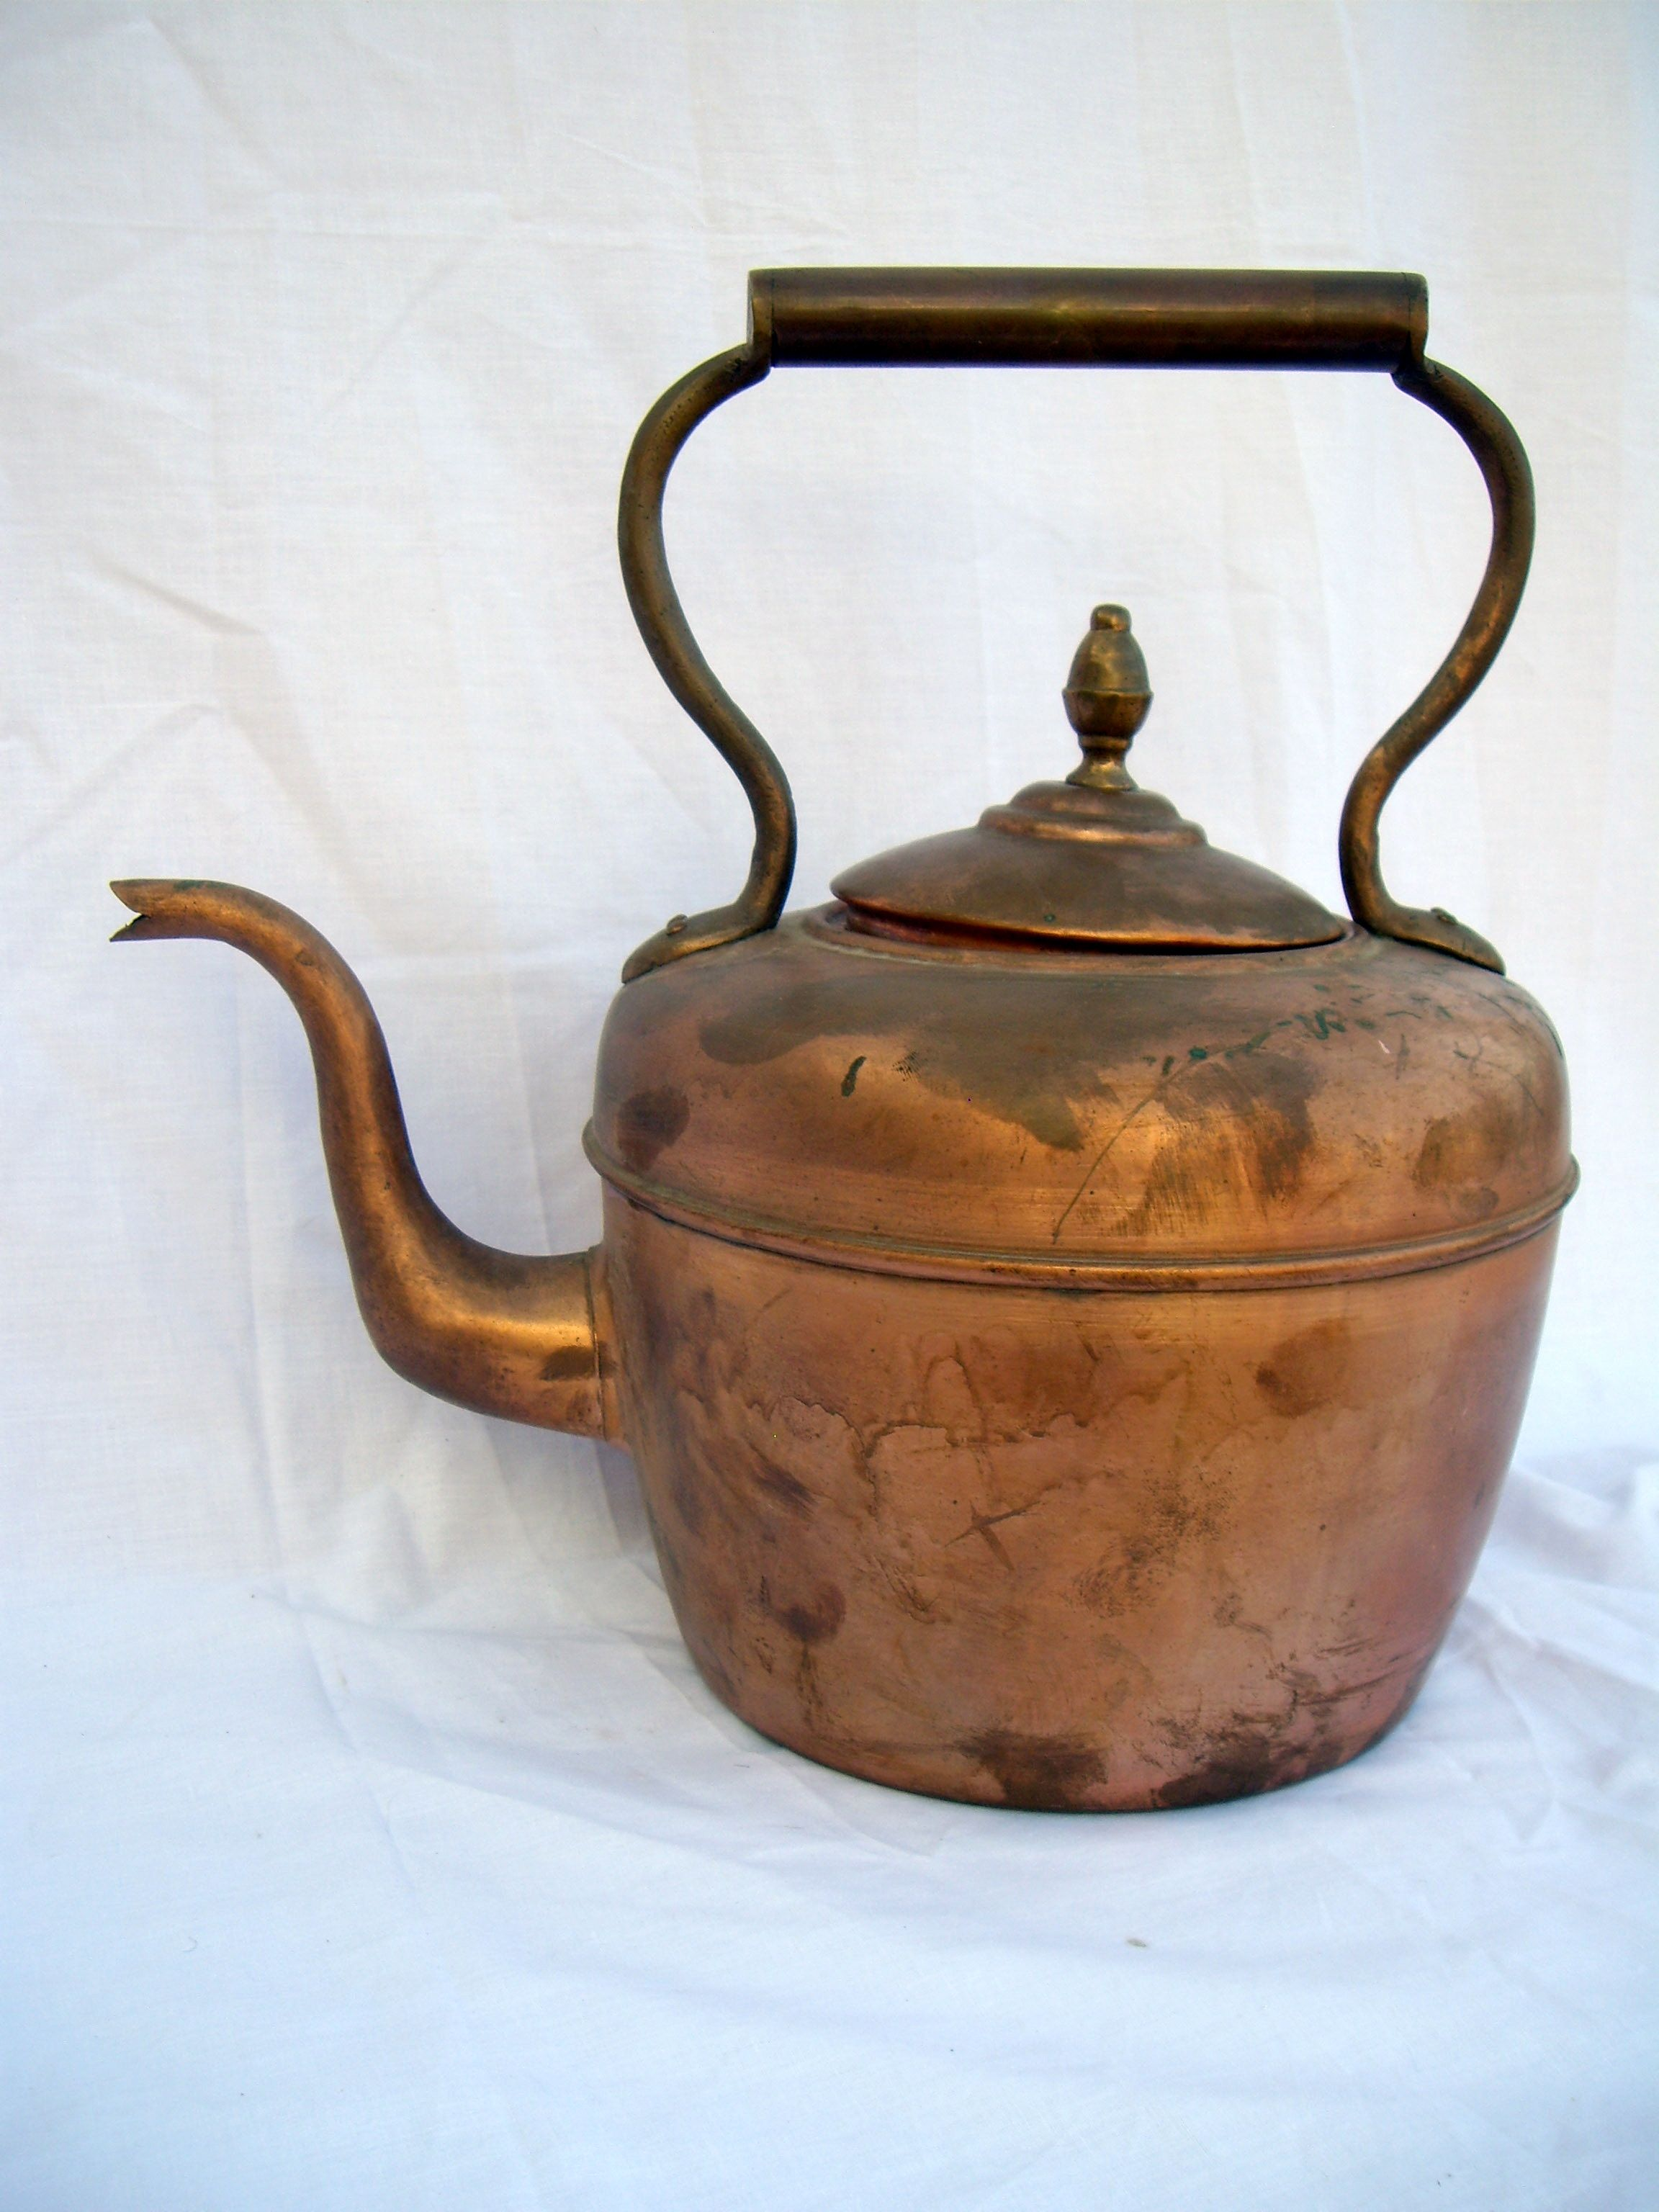 copper kettle catering Copper kettle catering essay sample a synopsis copper kettle catering is a full service catering company that was established in 1972 they have subsequently grown to be one of the largest catering businesses in north carolina.